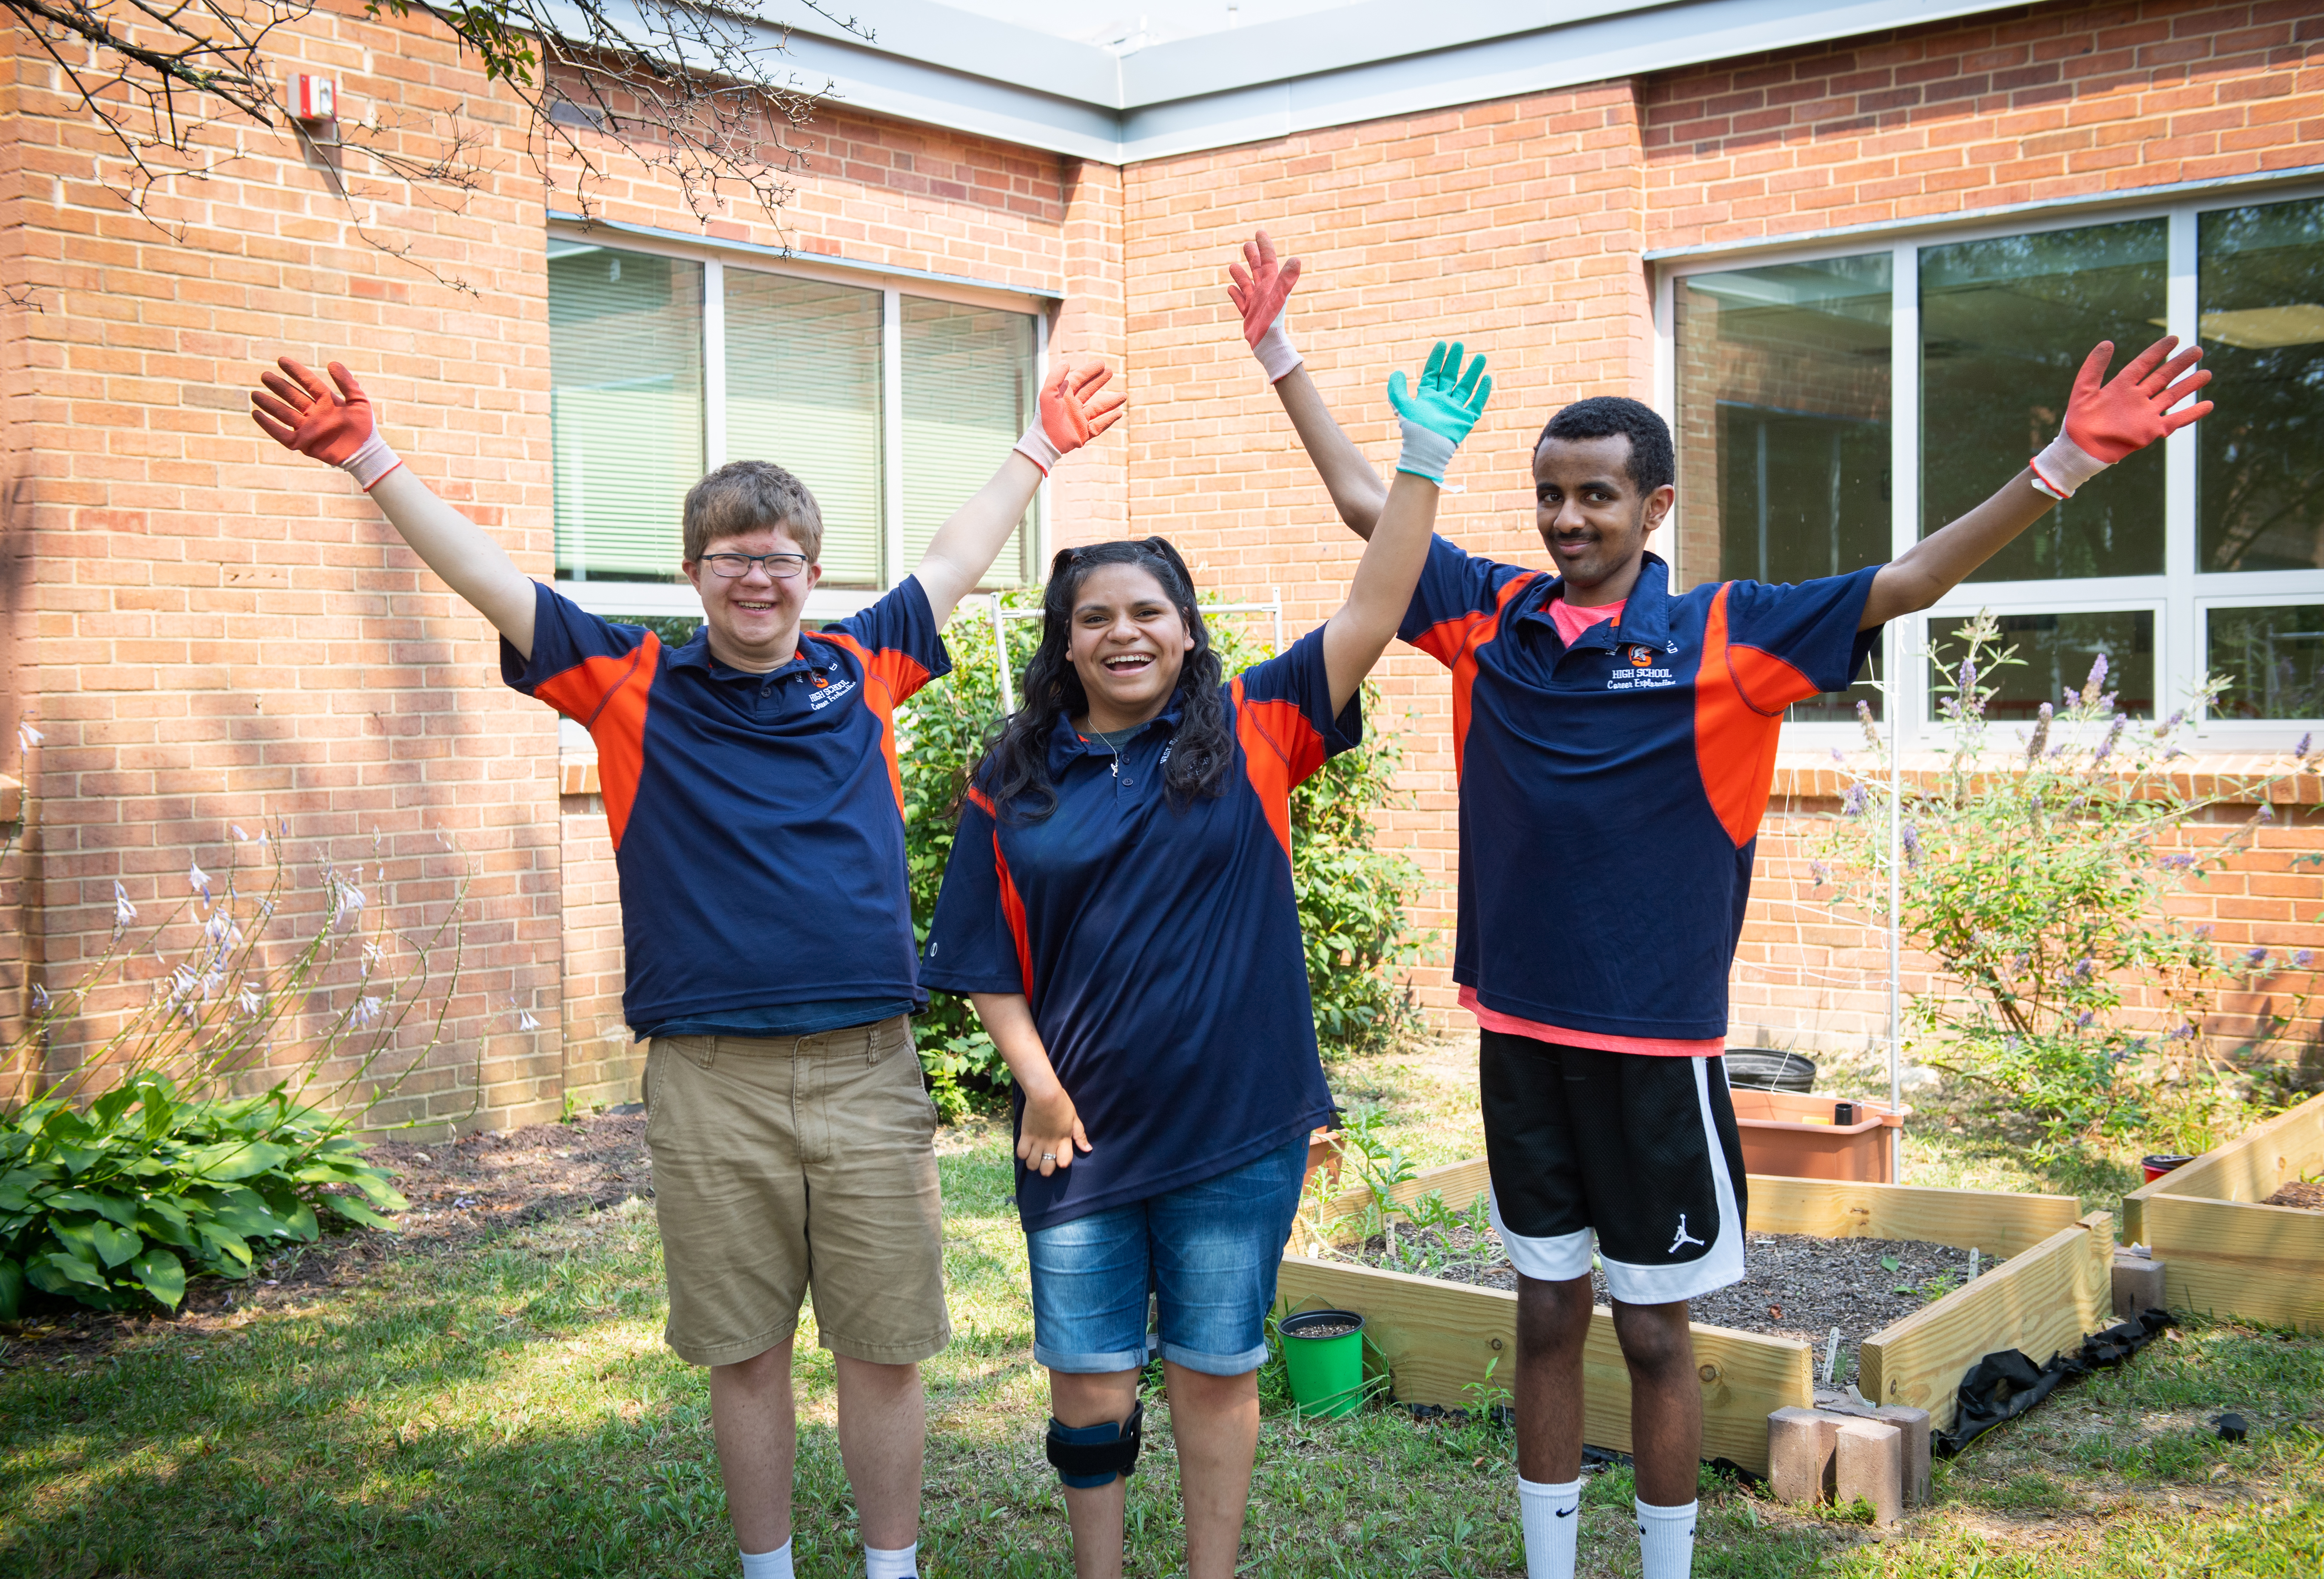 Getting the job done: John, Ariana and Yisak worked with other students to transform this green space.